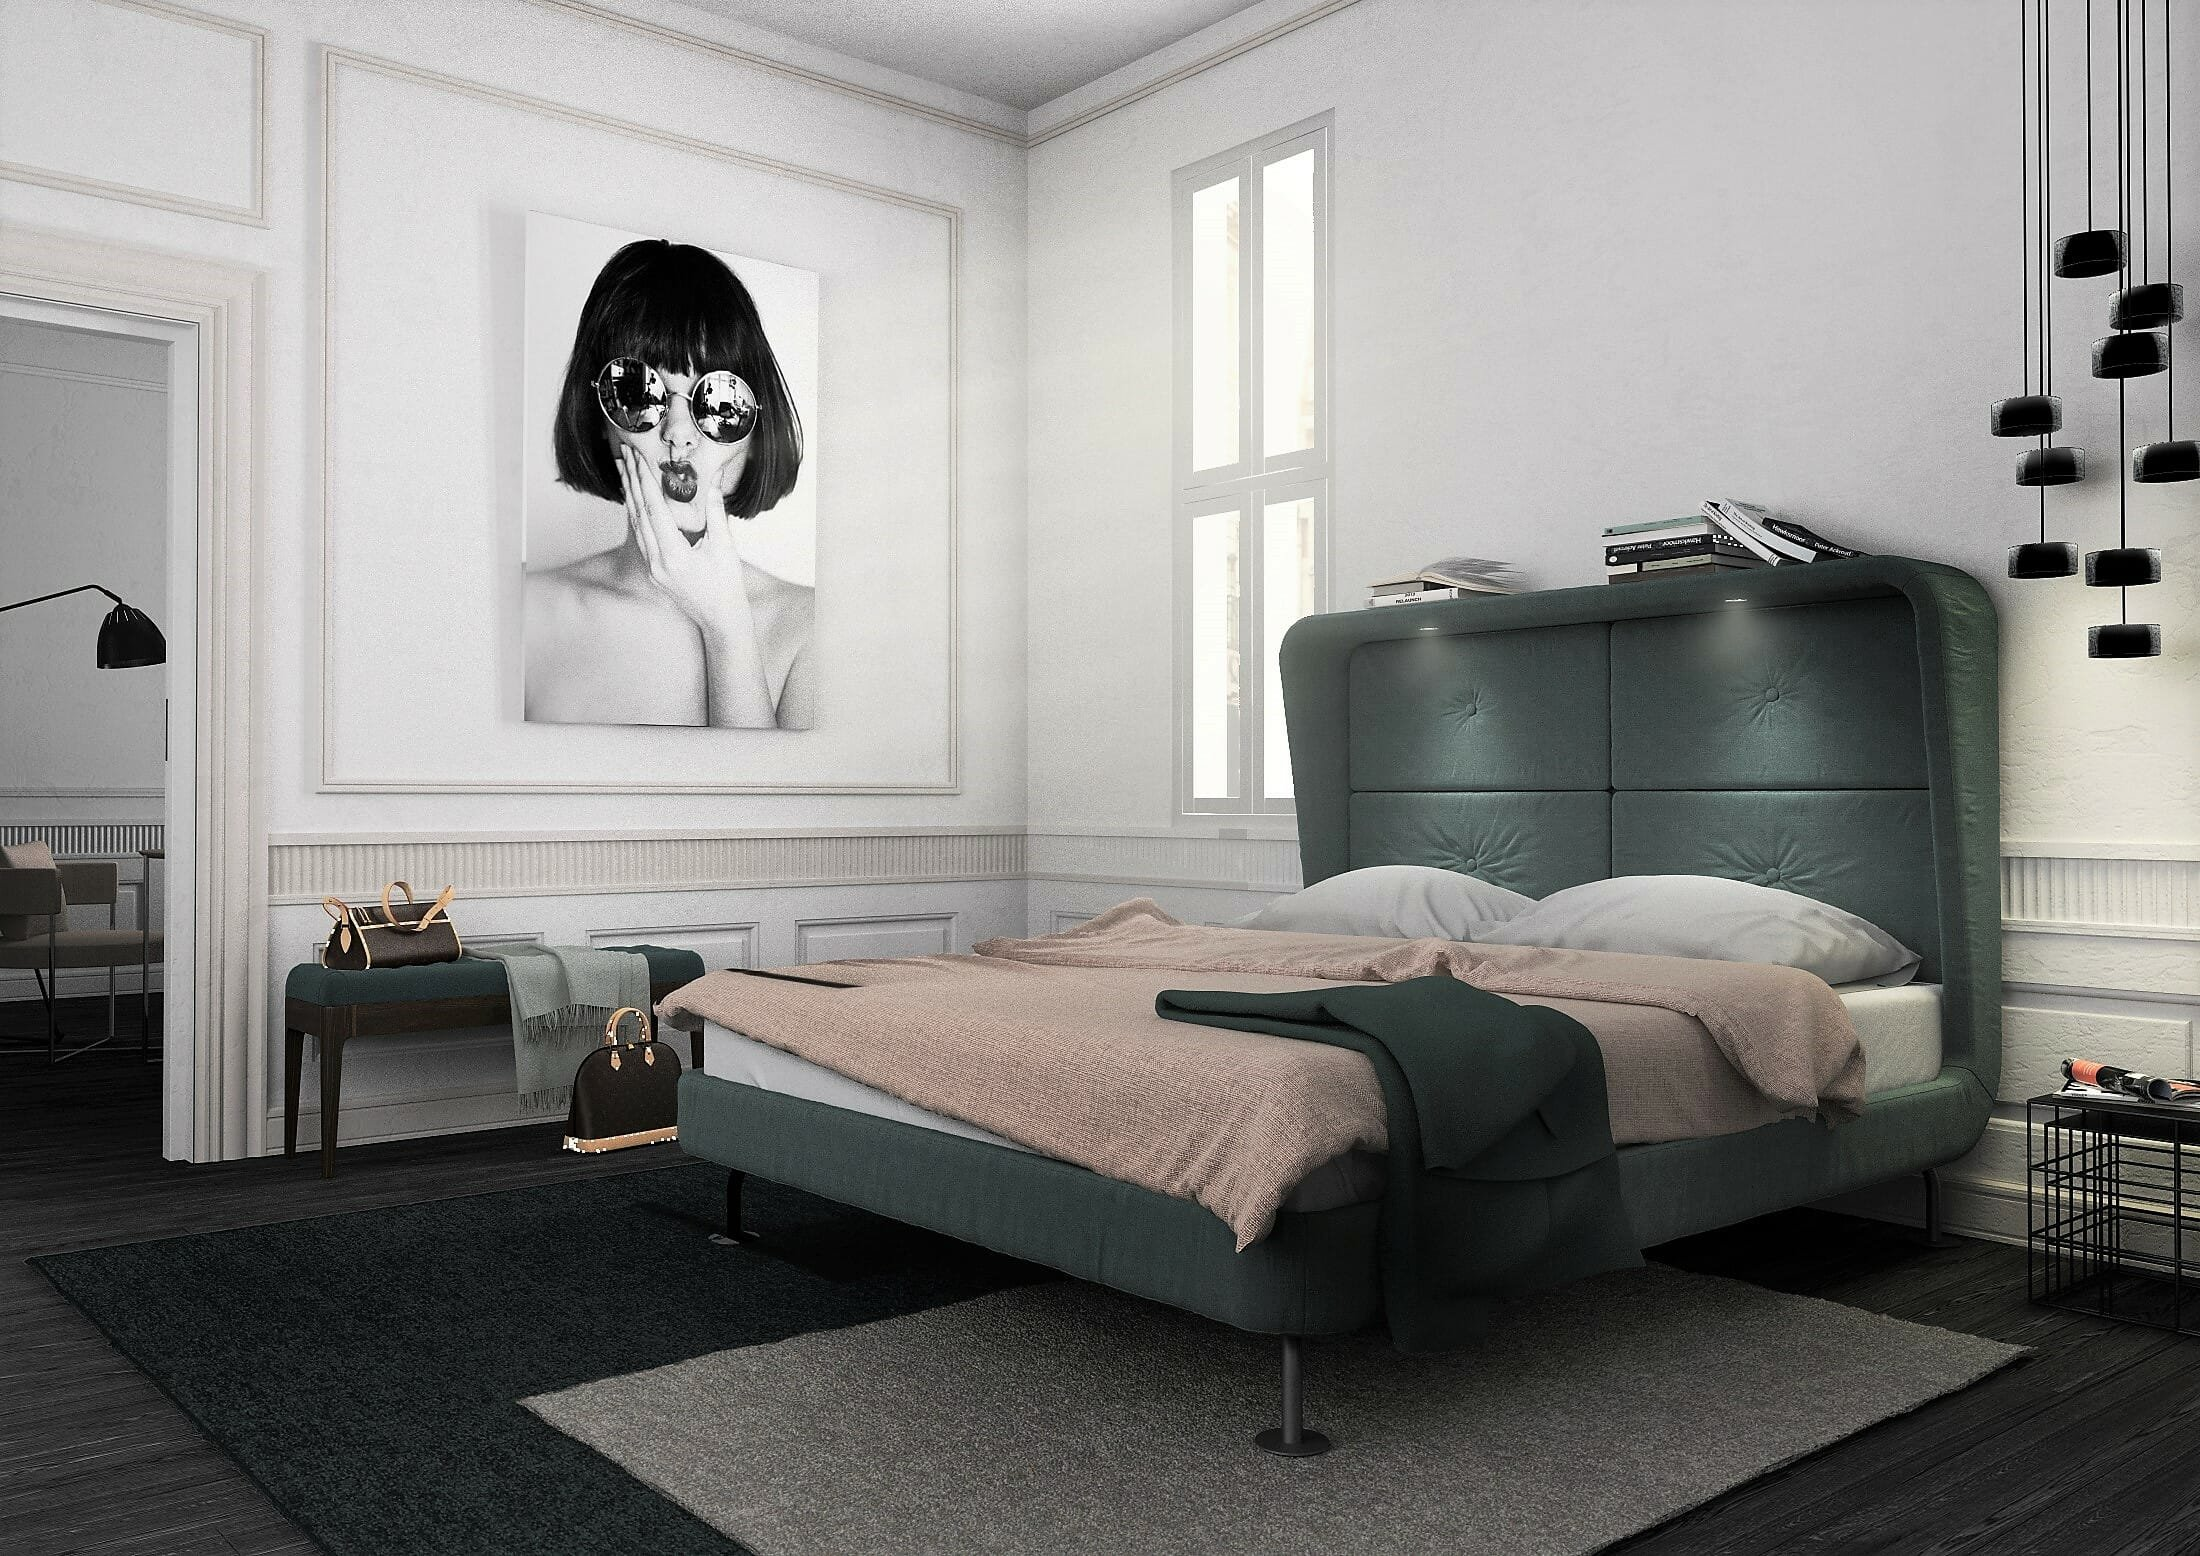 French chic master bedroom design by Decorilla designer Christian G